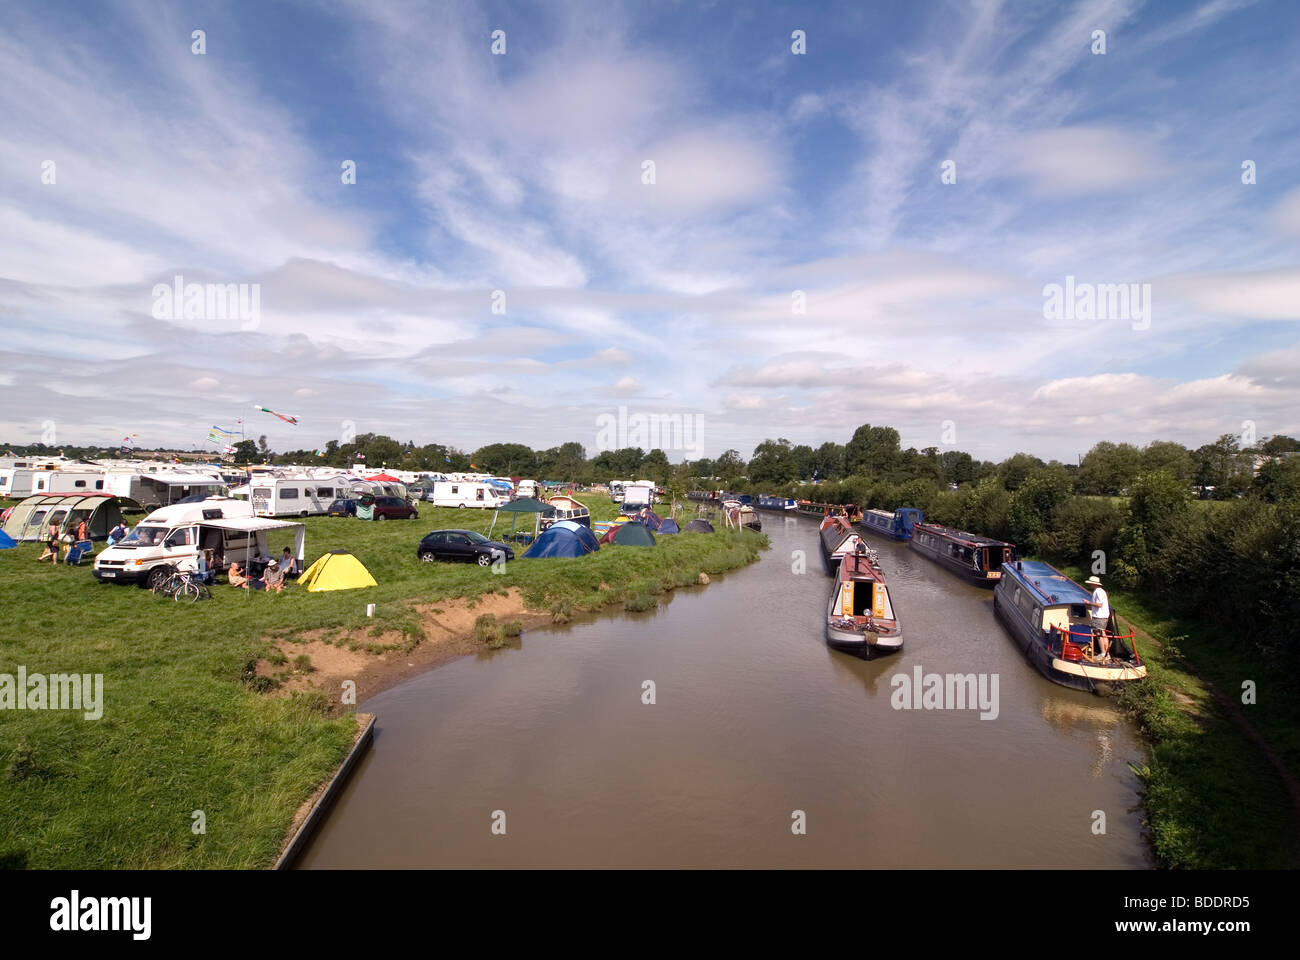 Fairport's Cropredy Convention friendly music festive near Banbury Oxfordshire on the south Oxford canal - Stock Image